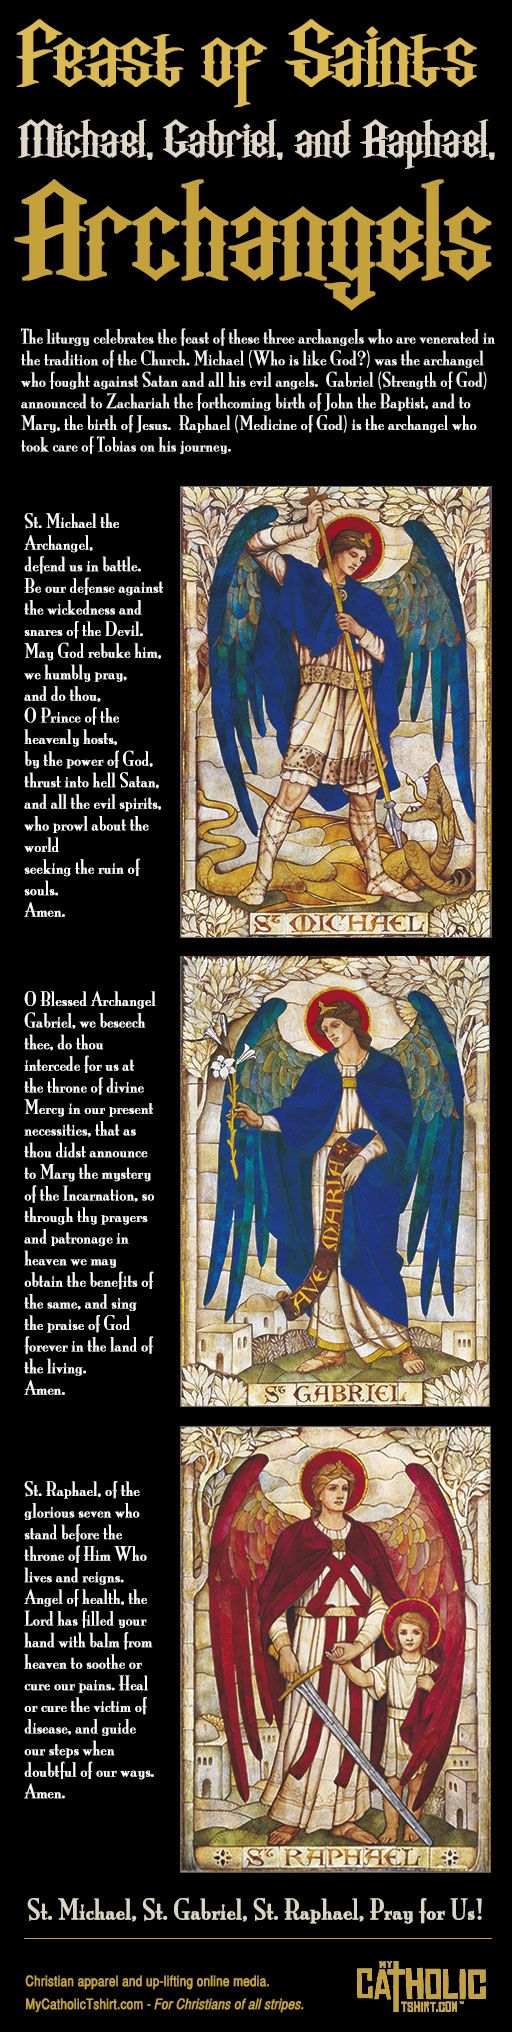 Veneration of the Holy Archangel Michael